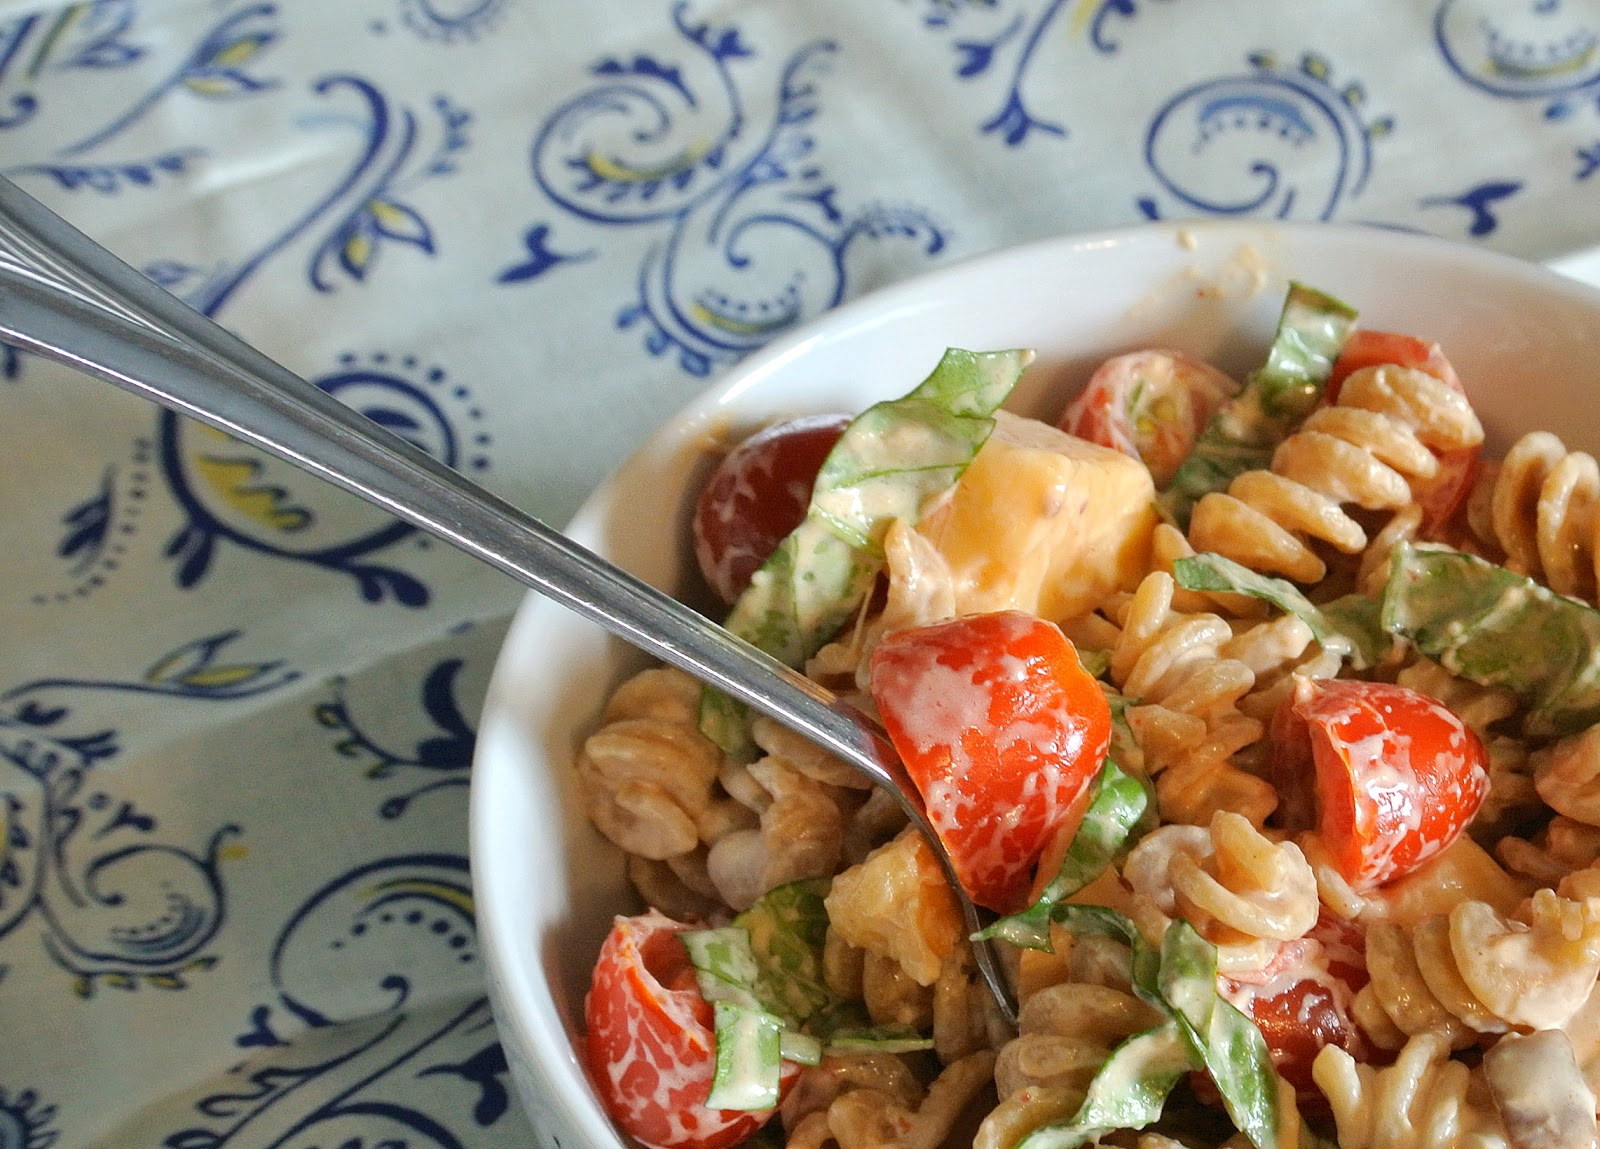 Spicy Pasta Salad With Smoked Gouda, Tomatoes, And Basil ...